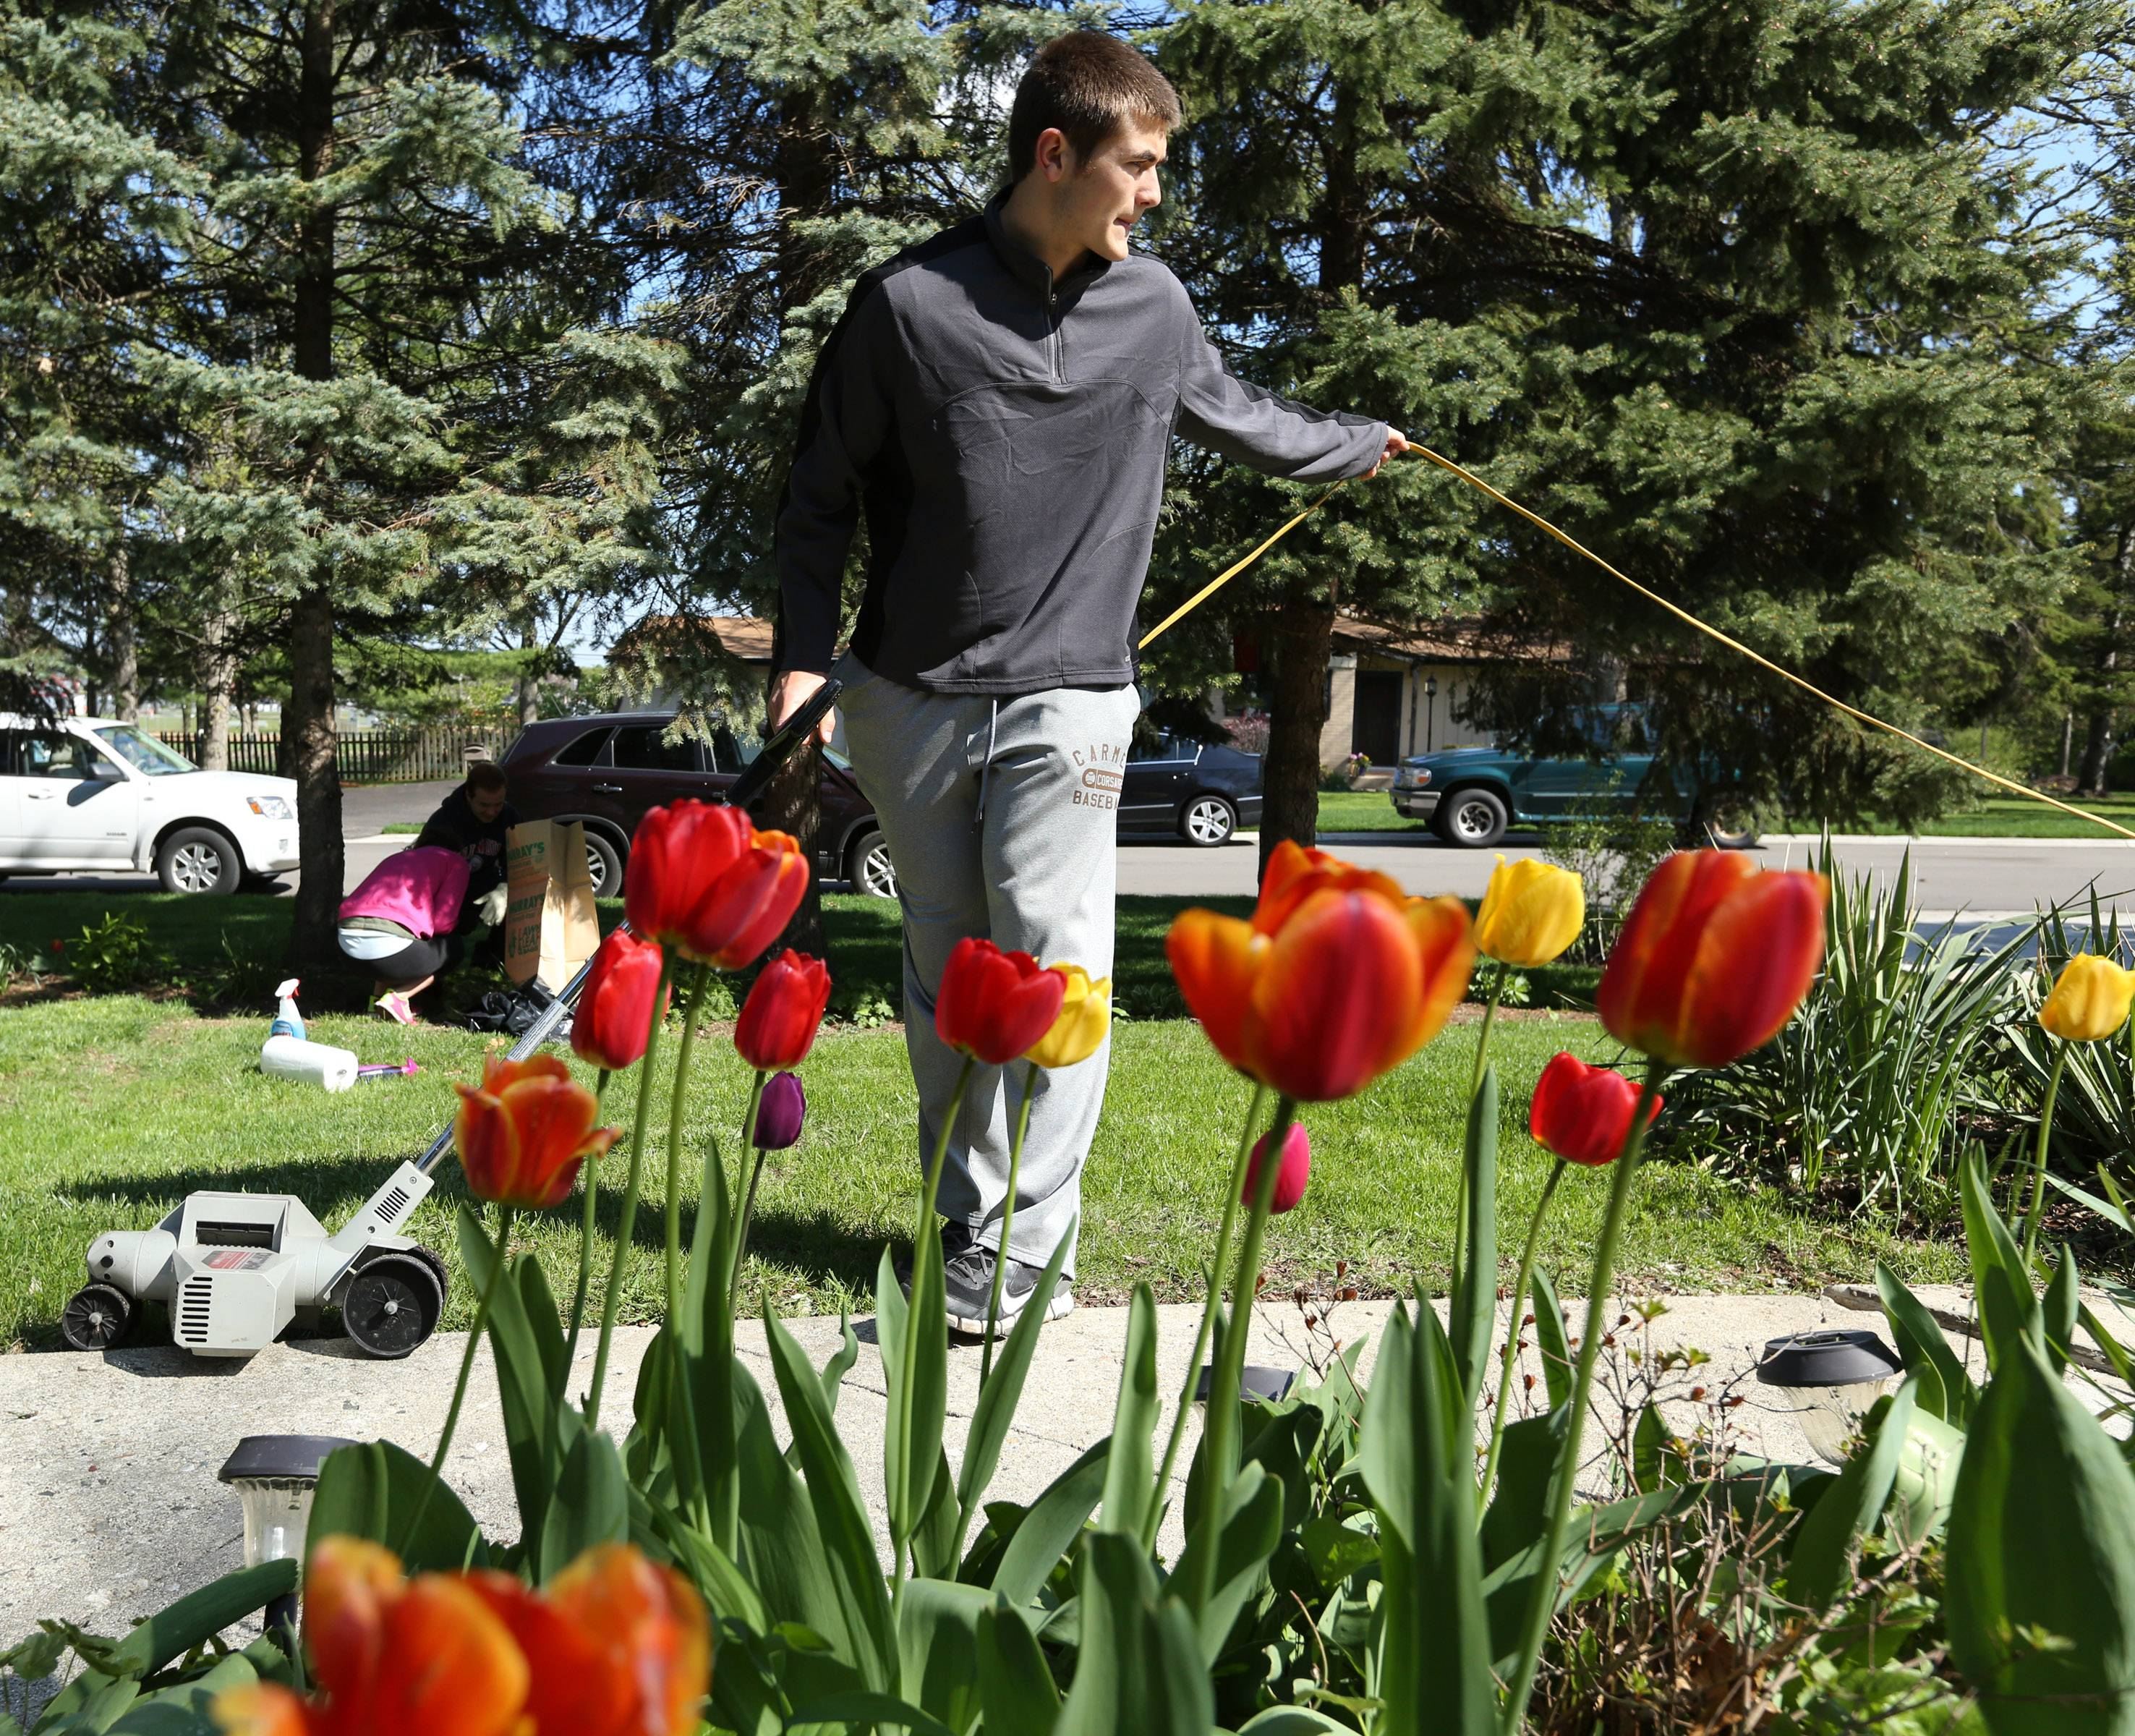 Carmel High School student Joe Hoy, 17, edges the sidewalk at Agnes Radakovitz' house in Mundelein as part of the Village of Mundelein's annual A-May-Zing event on Saturday.